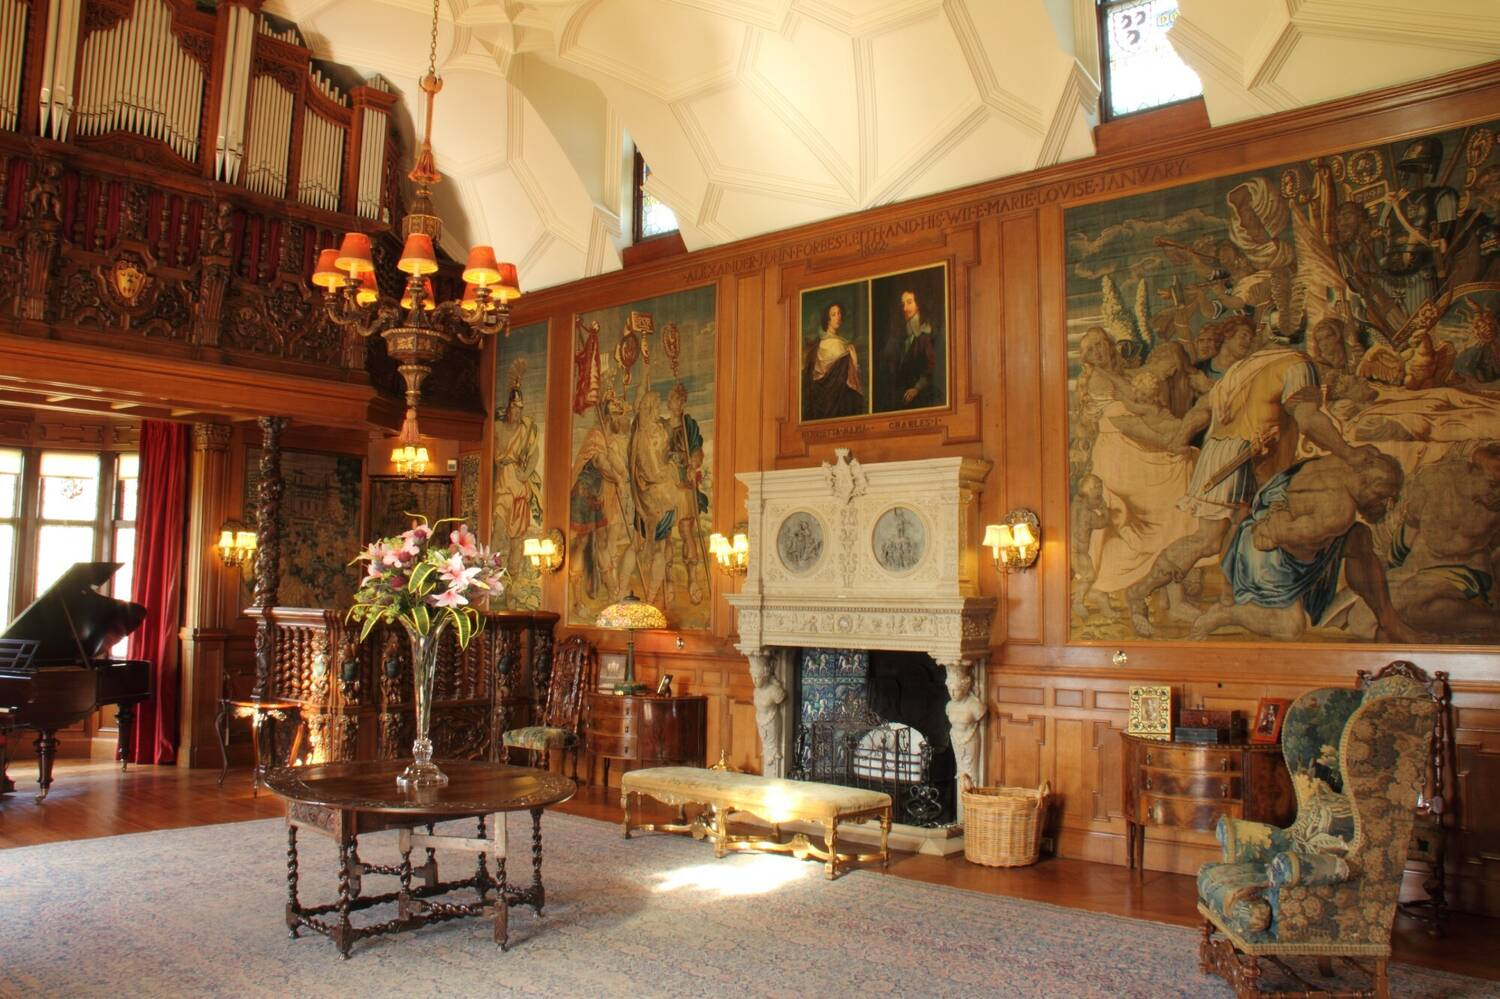 Grand room in a castle, with a large stone fireplace on a wood-panelled wall. There is a grand piano next to the window at one end of the room, and paintings and tapestries on the wall.